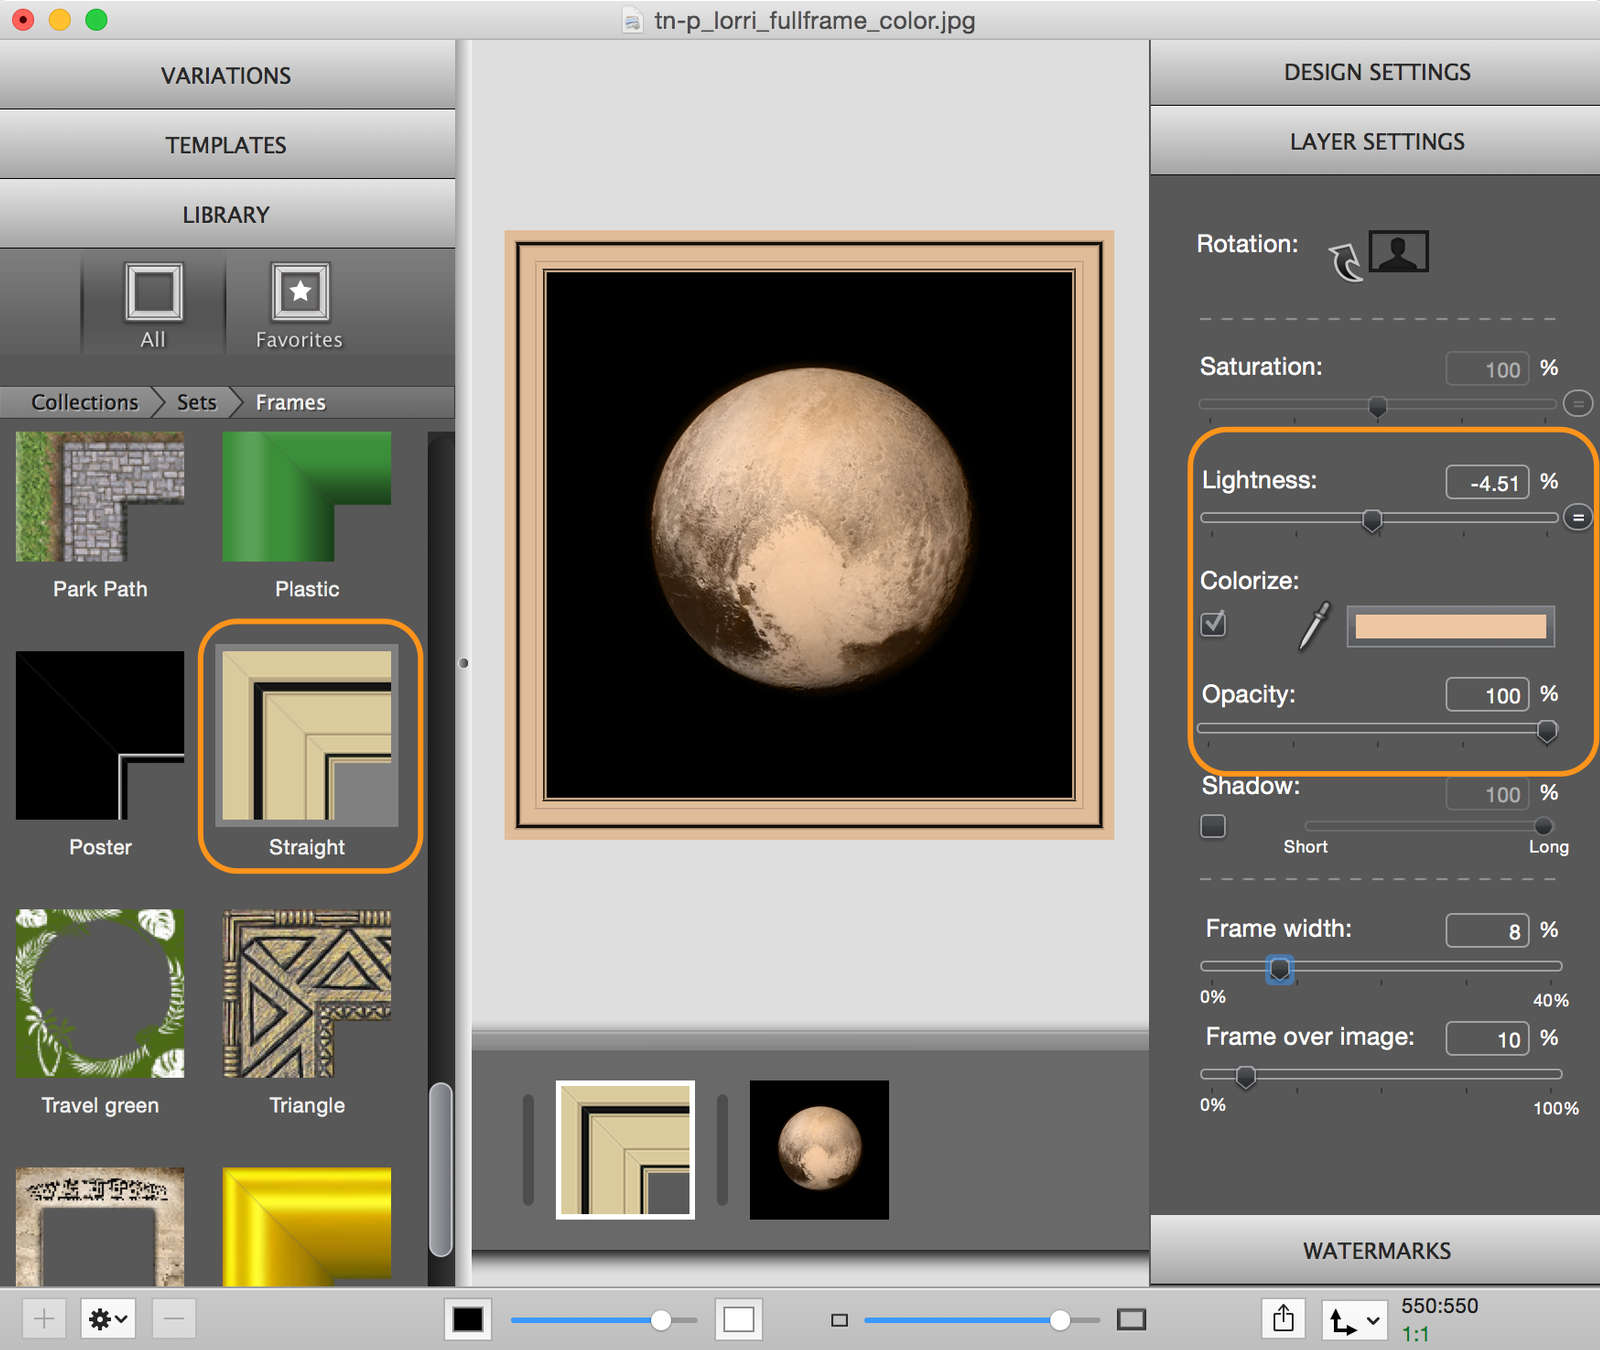 ImageFramer setting for Pluto frame